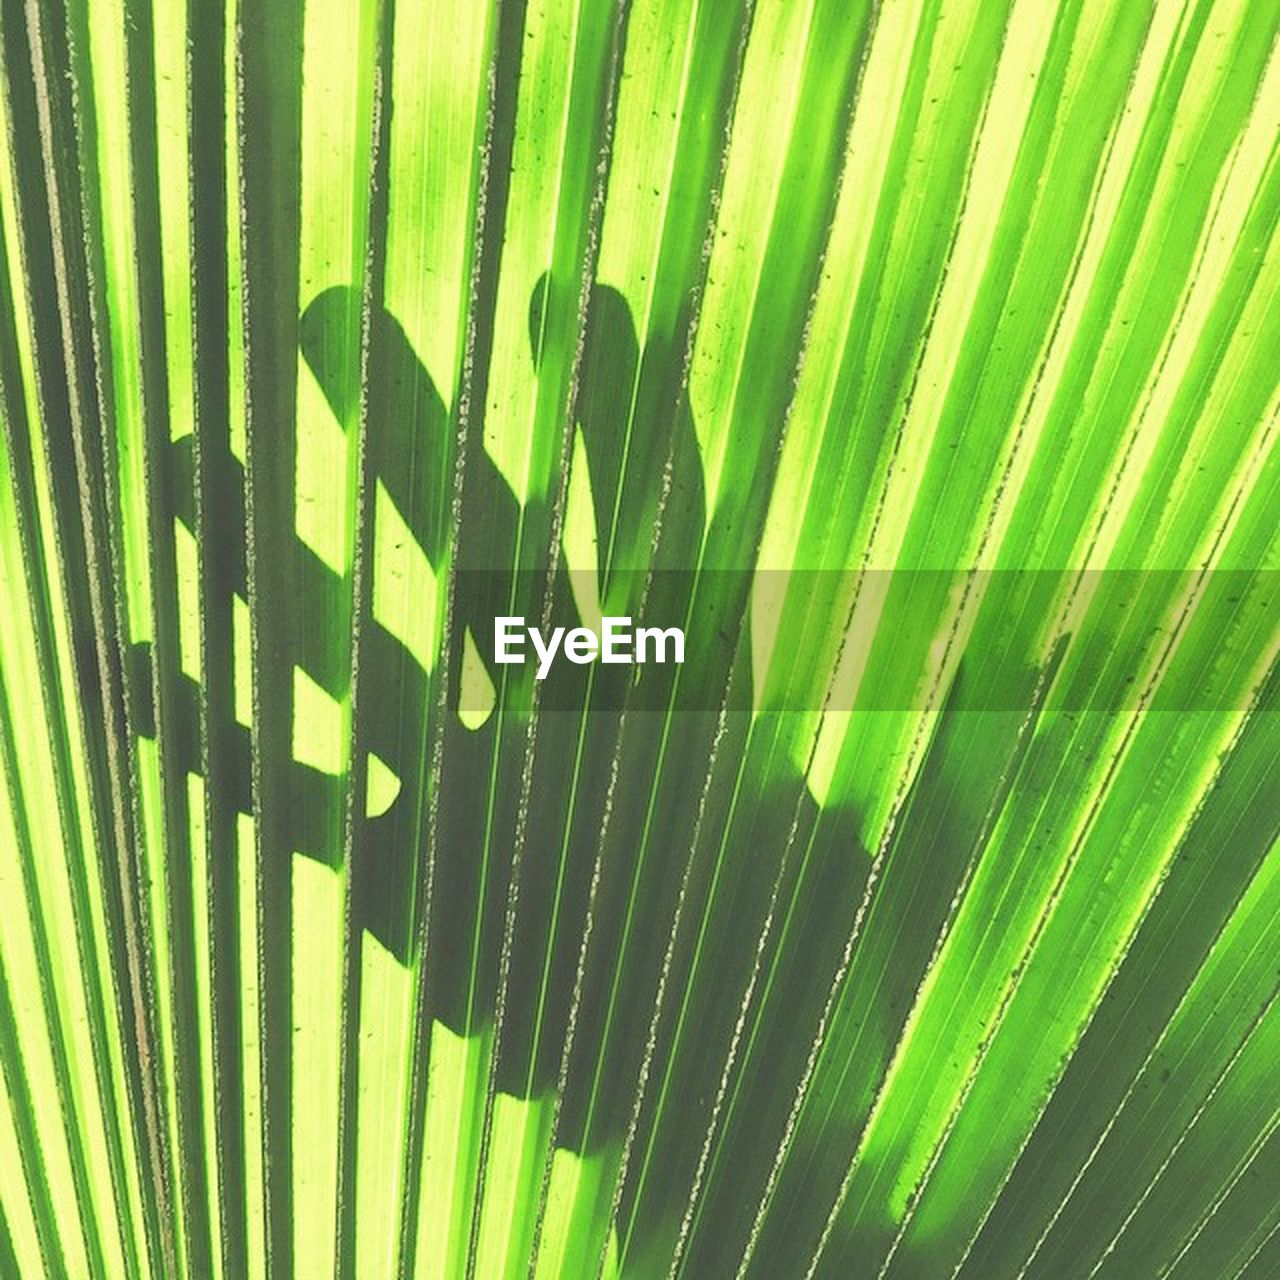 green color, pattern, no people, nature, leaf, close-up, day, palm leaf, natural pattern, striped, growth, palm tree, plant part, outdoors, full frame, backgrounds, plant, beauty in nature, sunlight, tropical climate